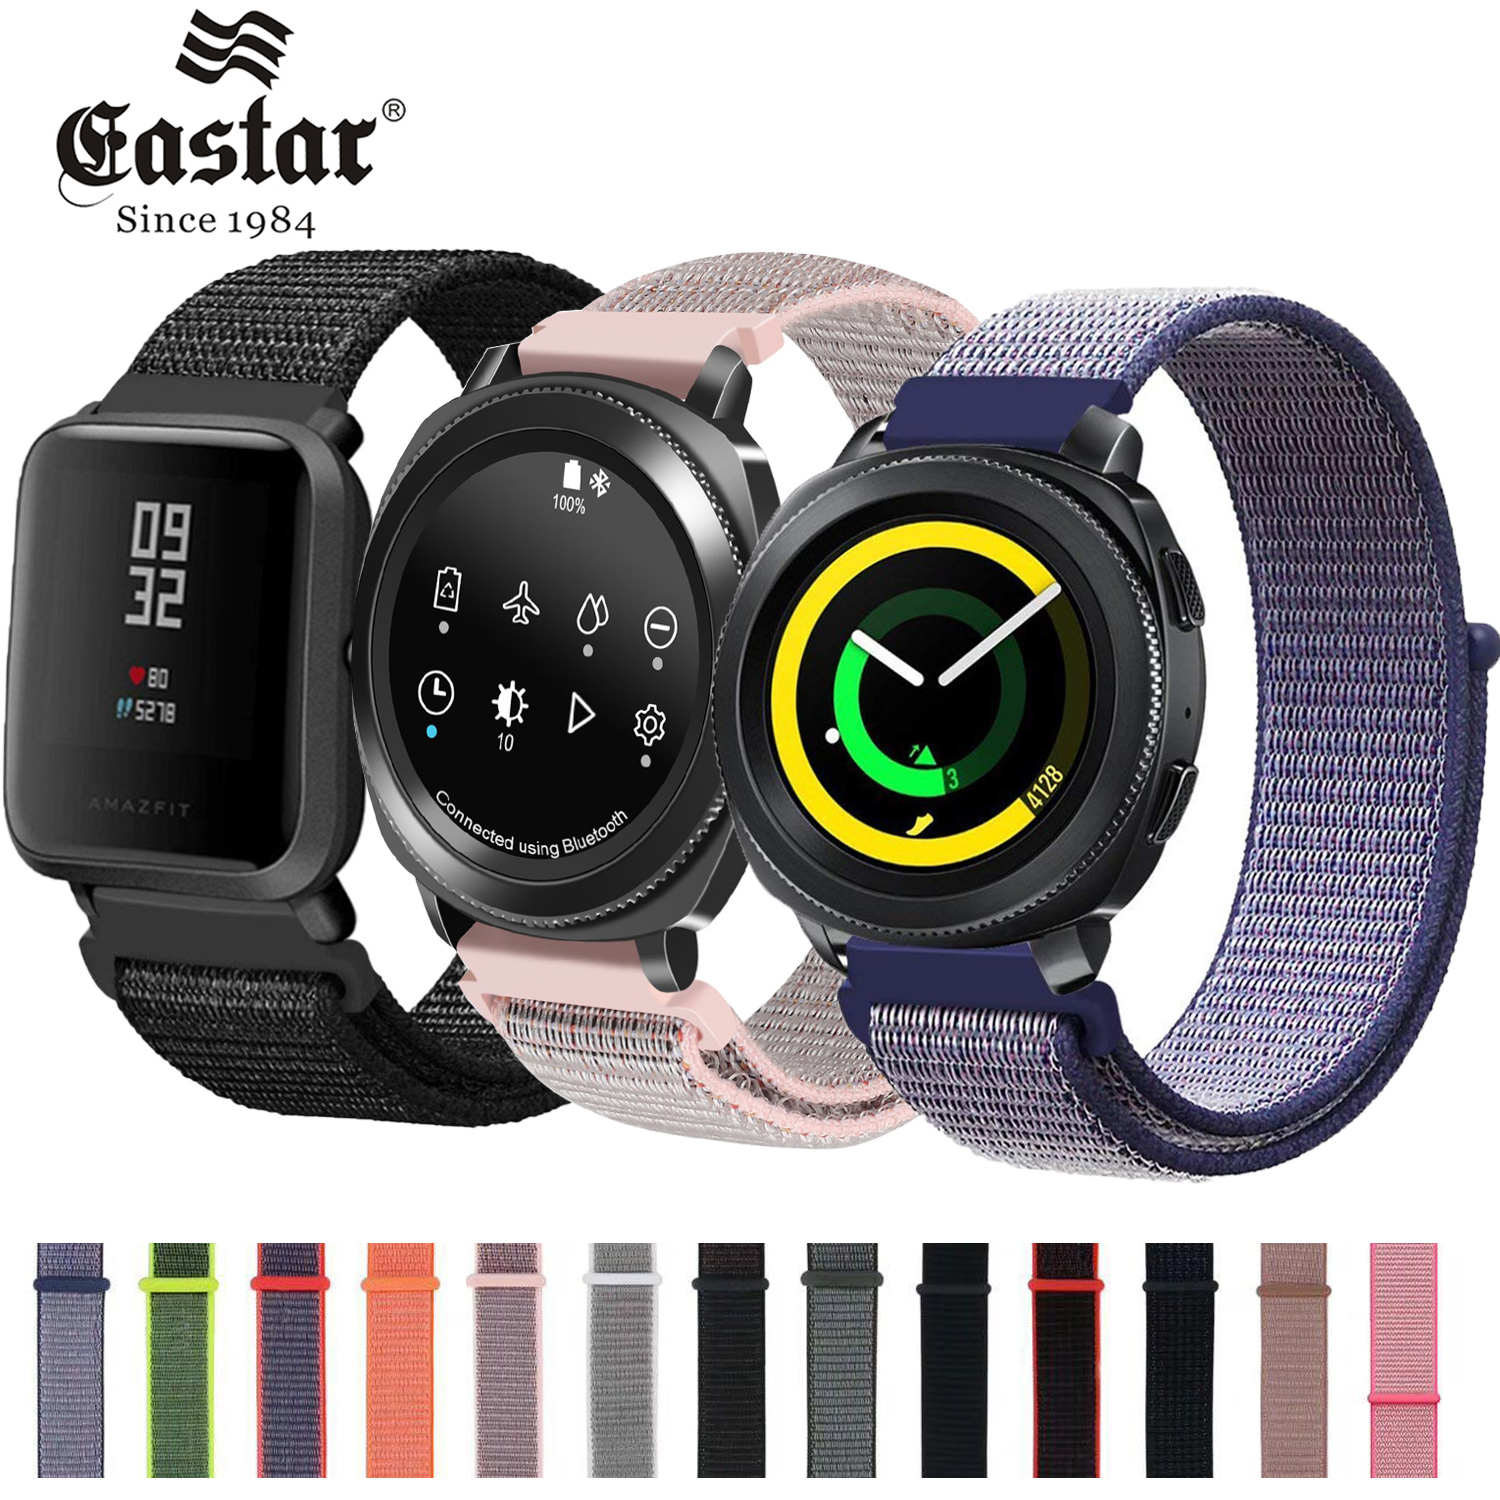 Nylon Woven Watch Band 20mm 22mm Watch Strap For Amazfit Pace Stratos Pace 2 For Samsung Gear Sport S2 S3 Frontier Classic